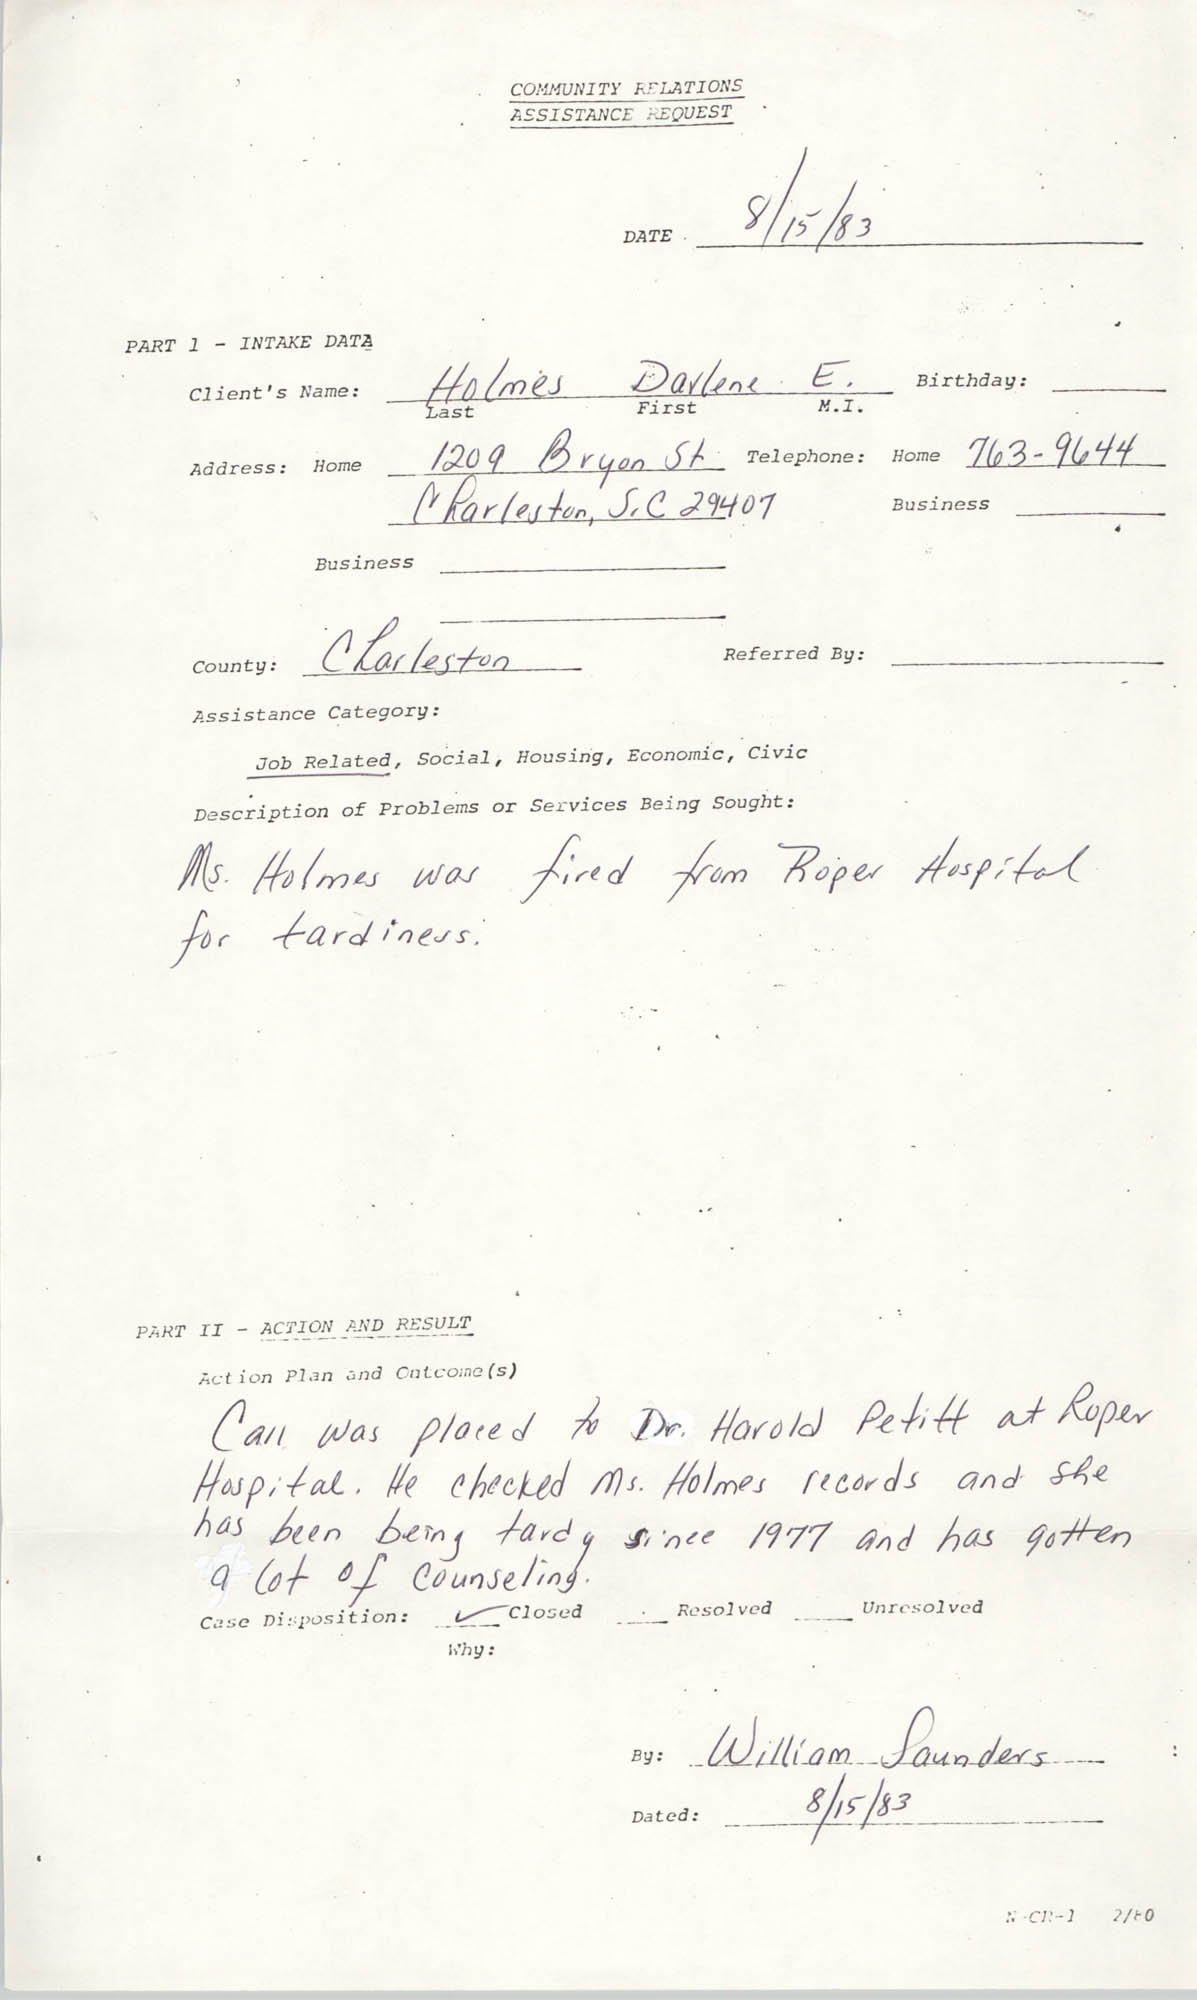 Community Relations Assistance Request, August 15, 1983